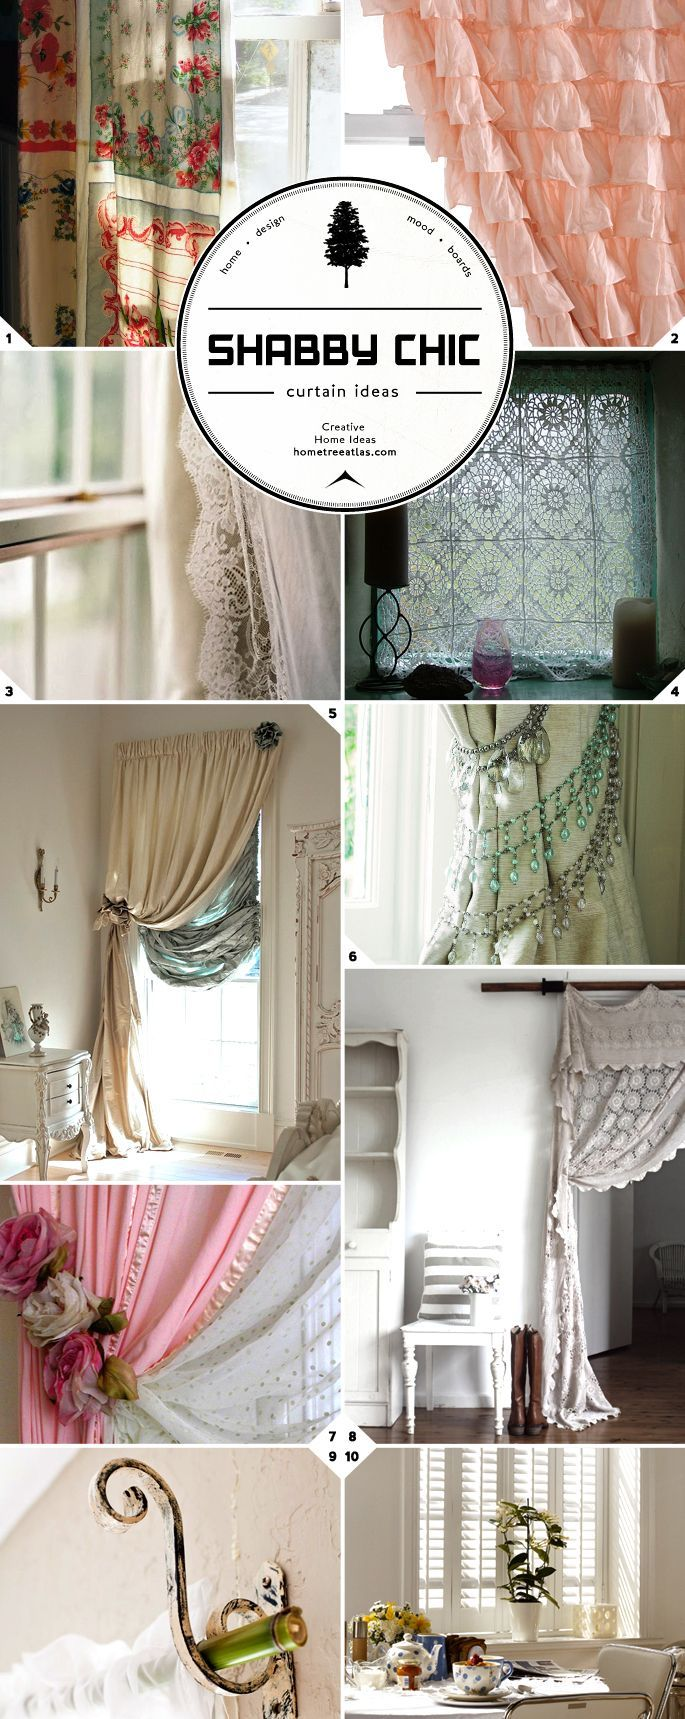 Shabby Chic is Still Chic for Those Who Love the Look! Window Treatment Style: Shabby Chic Curtains, Rods, and Tie Backs